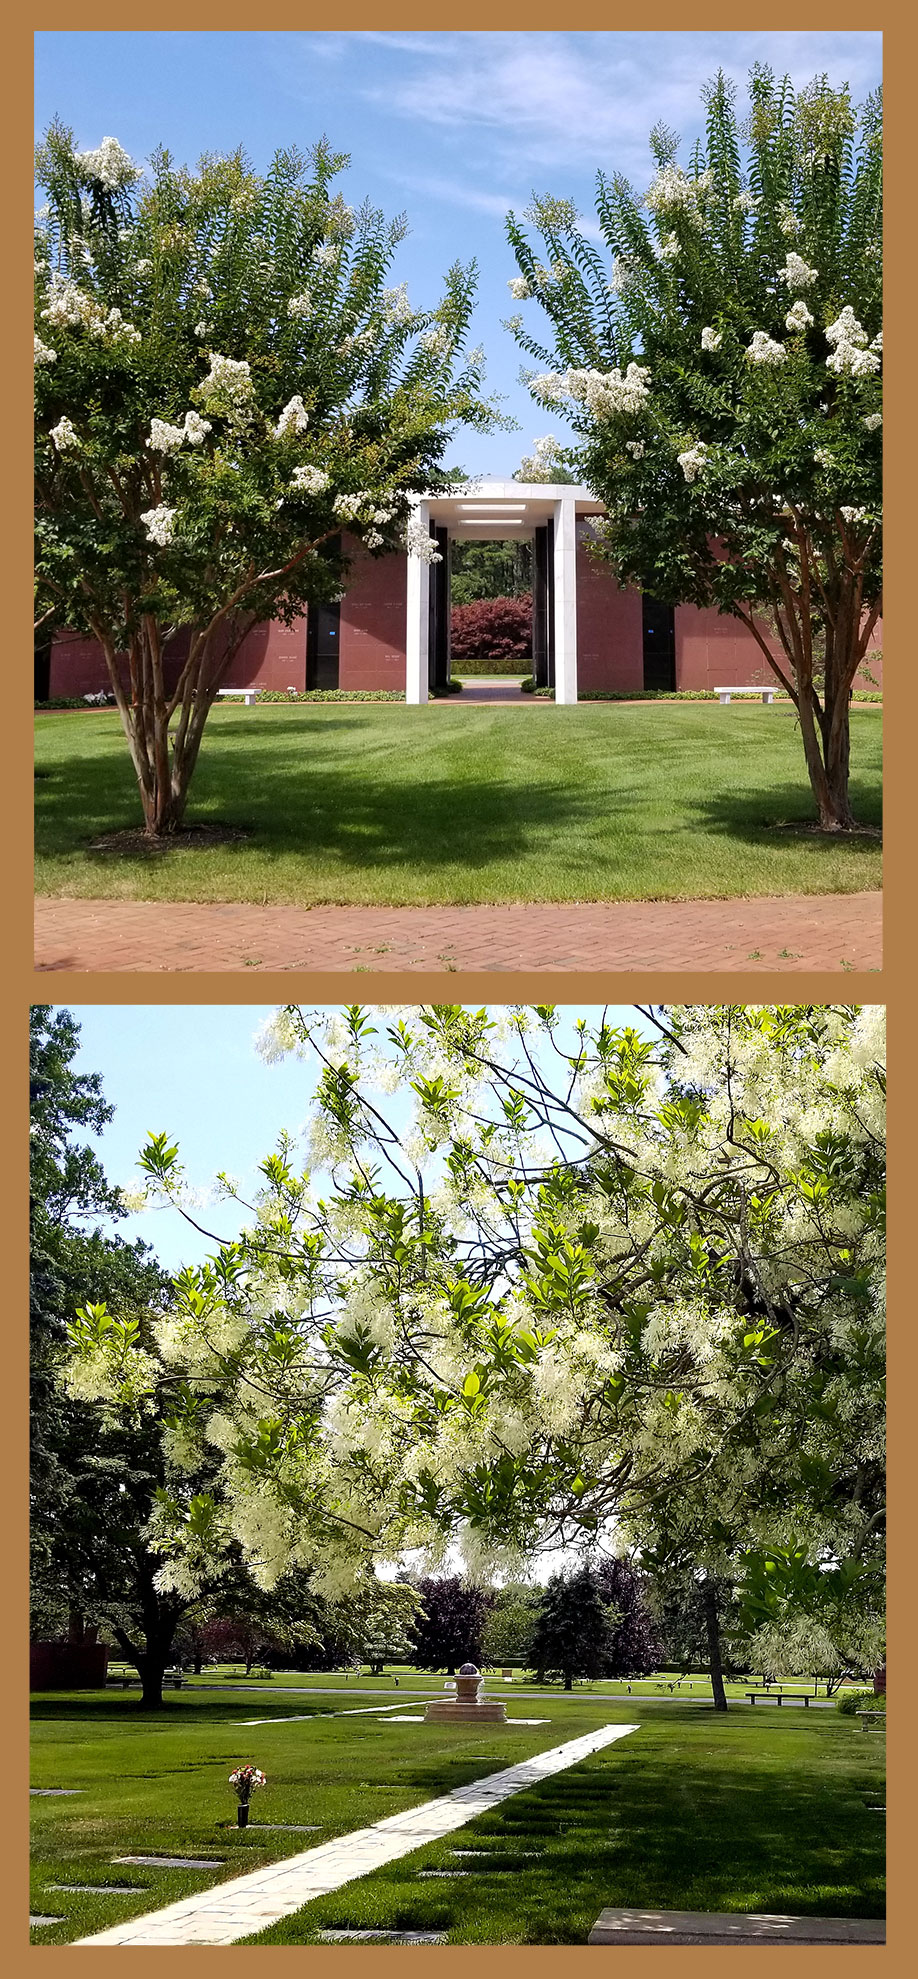 two images of spring trees